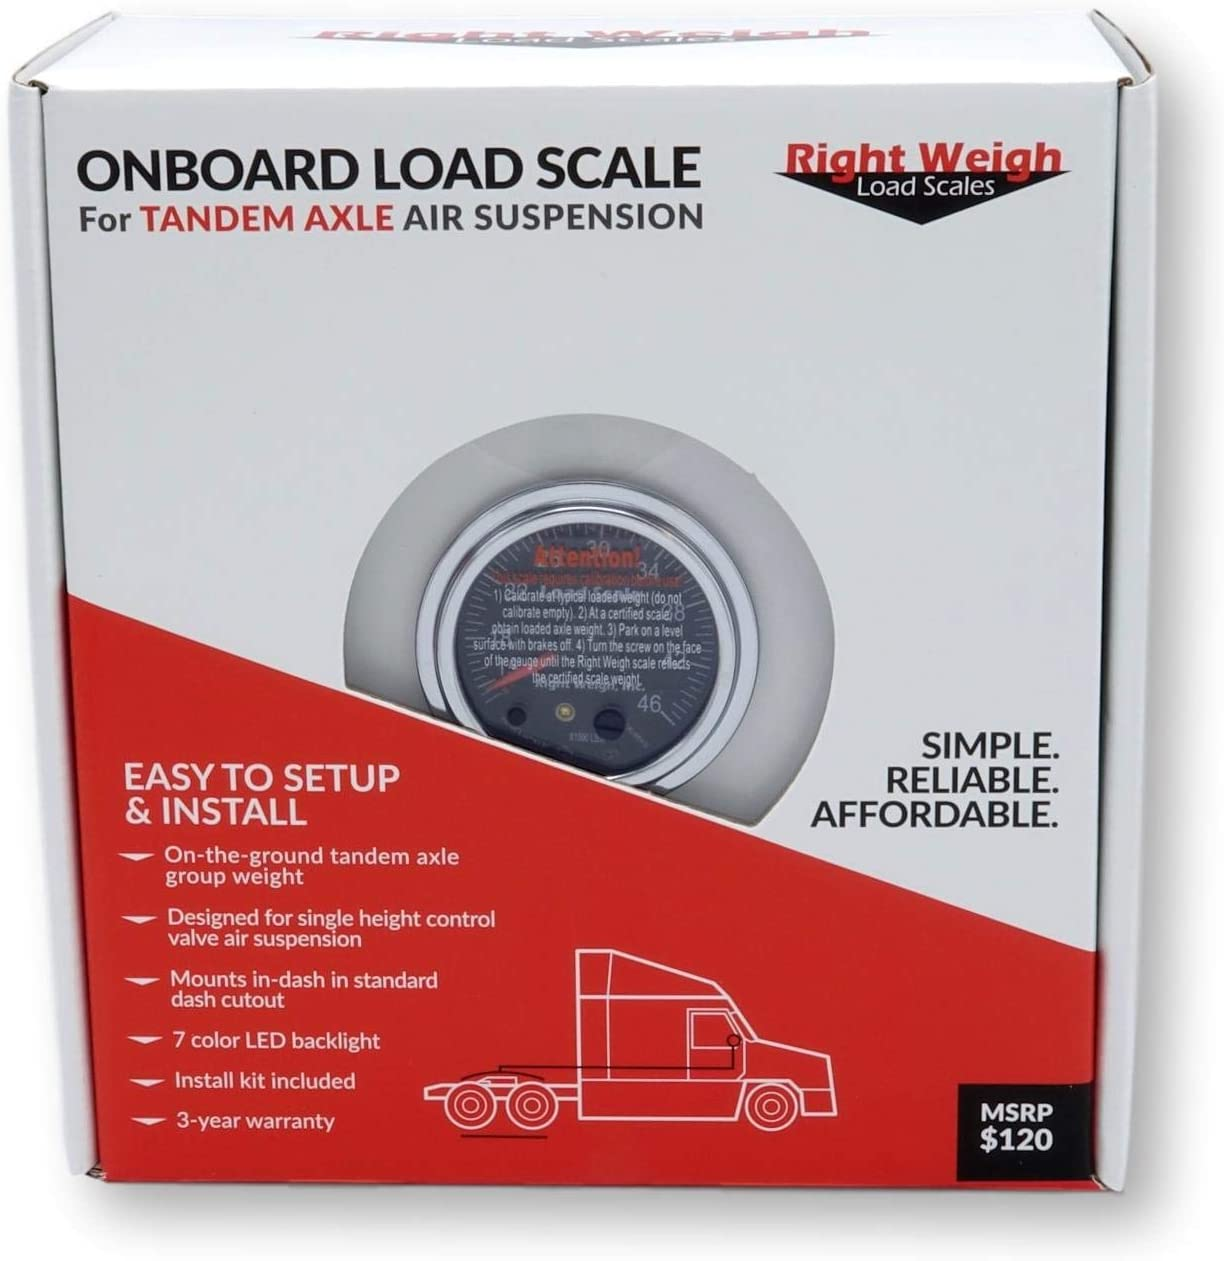 Right Weigh 250-HKANT40K-FF TANDEM Axle Load Scale for Hendrickson Vantraax Air